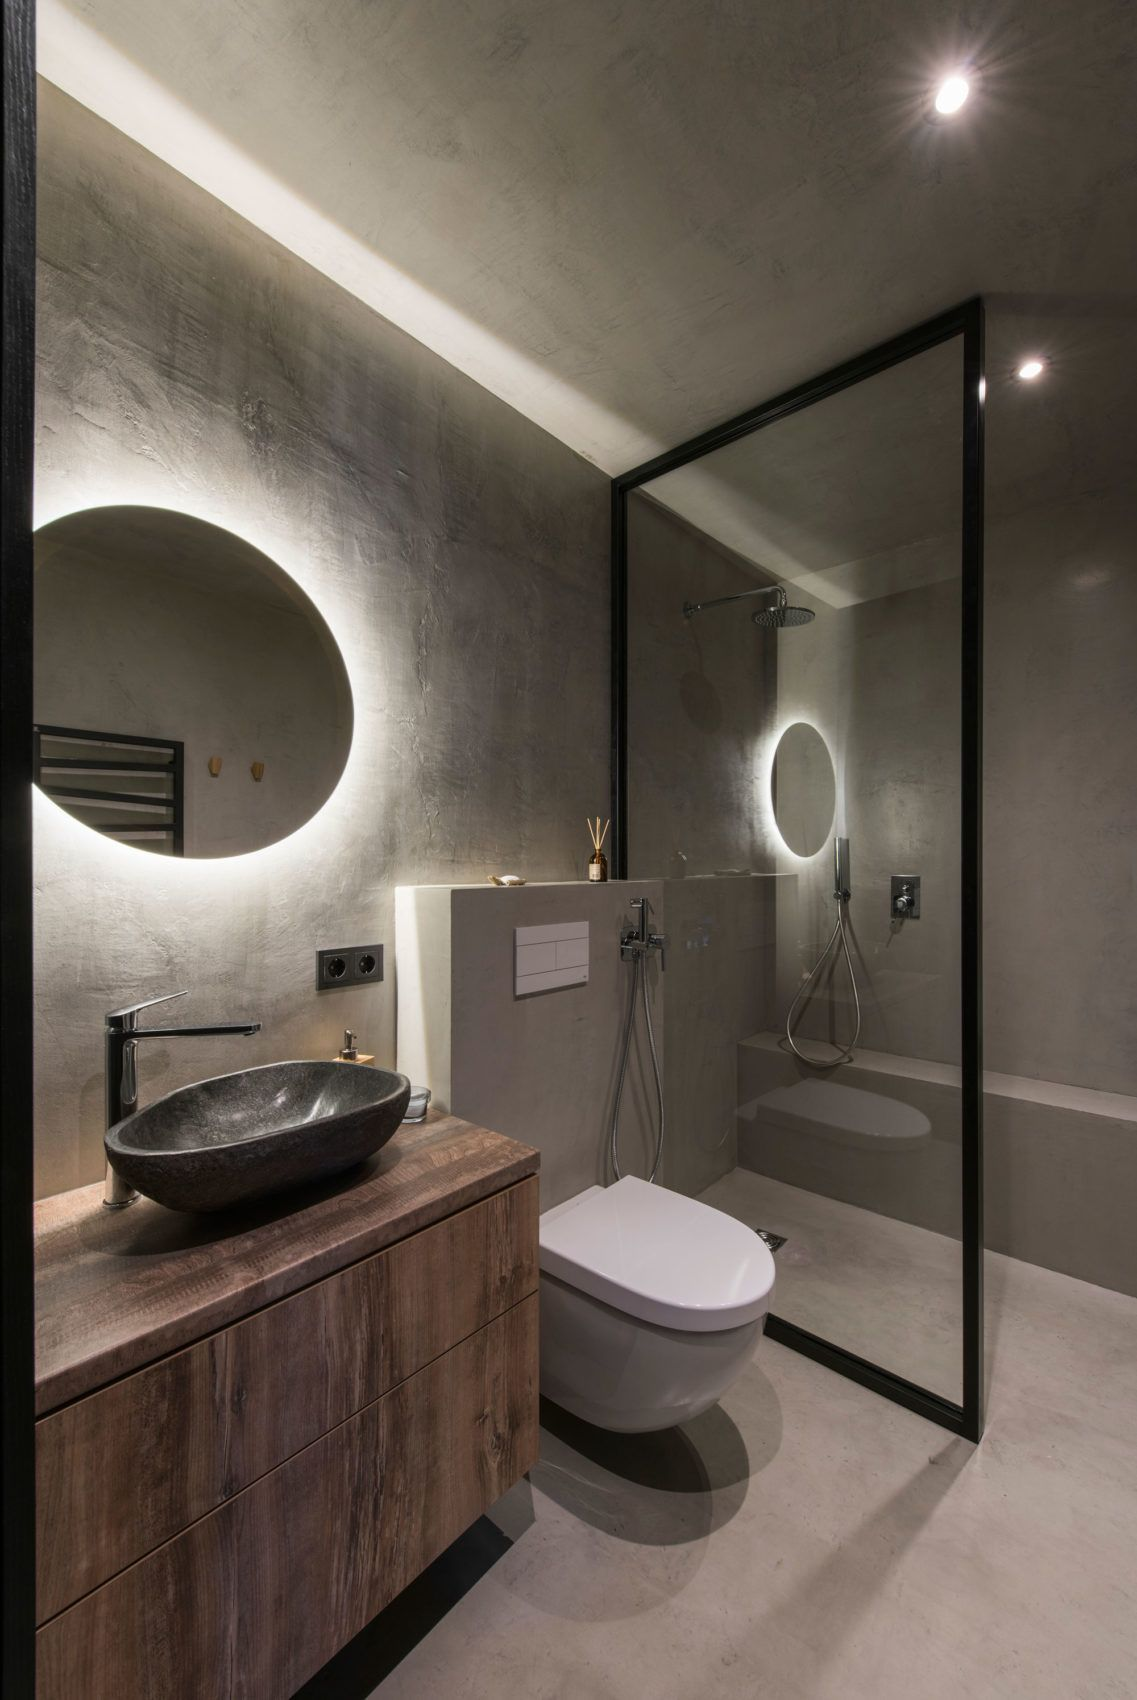 Modern bathroom #bathroom #lighting  Industrial bathroom decor